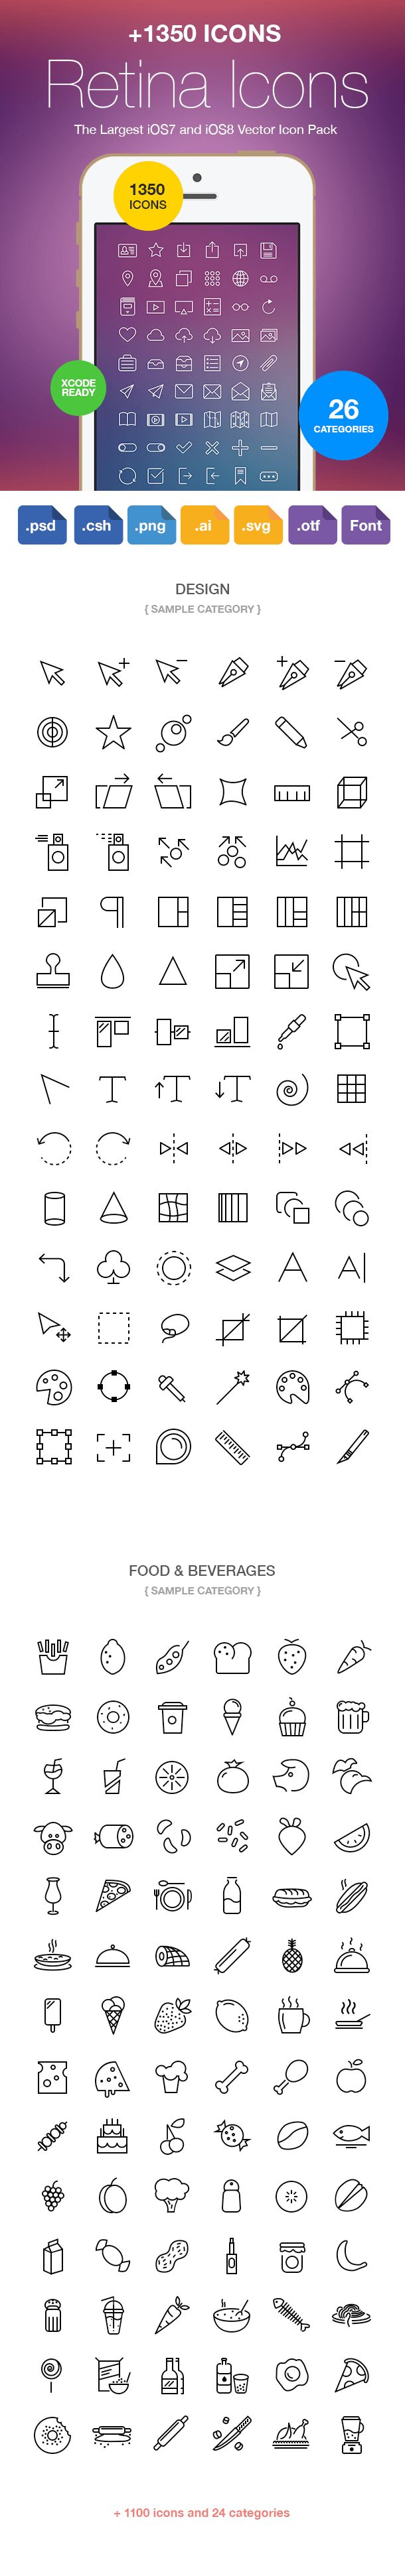 Retina Icons 1350 Vector Icons For iOS 8 iOS 7